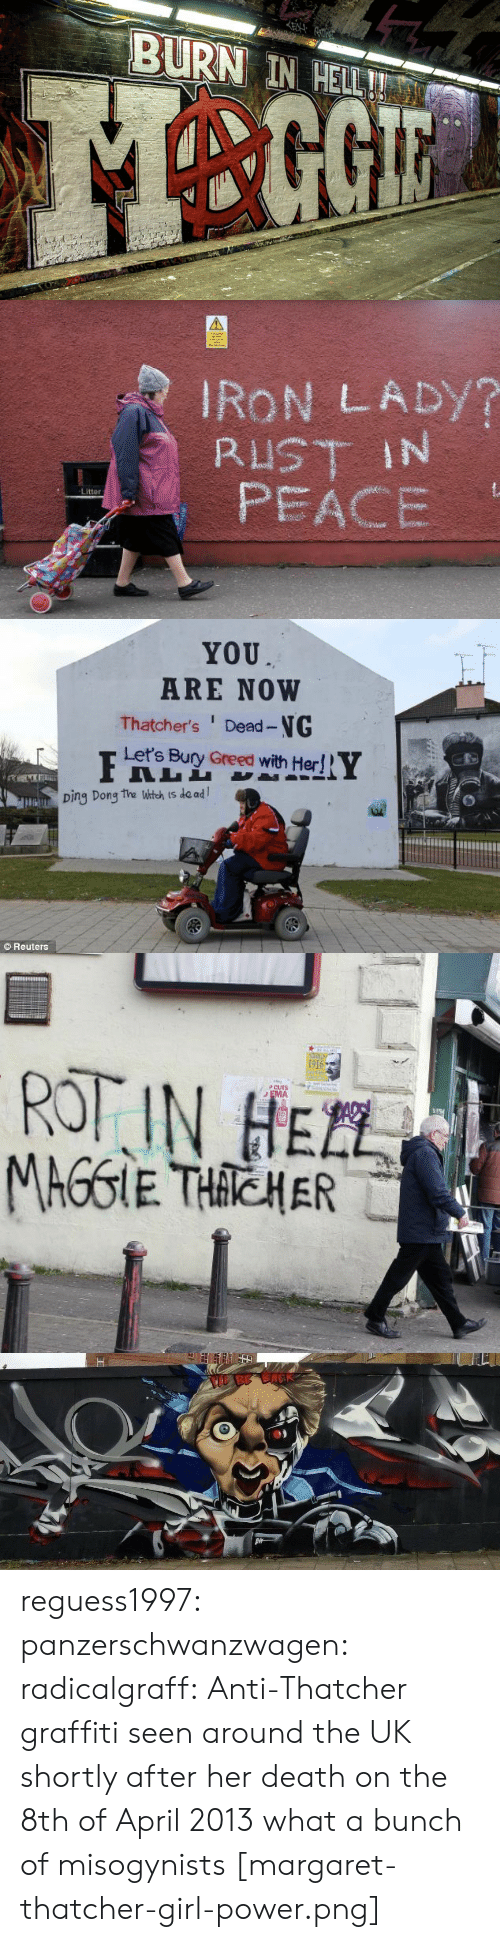 Graffiti, Tumblr, and Blog: EN  BURN IN HELL!   IRON LADY?  RUST IN  PEACE  Litter   YOU  ARE NOW  Thatcher's Dead-NG  Let's Bury Greed with Her!  Ding Dong the Witch is de ad  Reuters   1916  ROT IN HEZL  PCUTS  EMA  TEL  MAGGIE THACHER   BE BACK reguess1997:  panzerschwanzwagen:   radicalgraff: Anti-Thatcher graffiti seen around the UK shortly after her death on the 8th of April 2013 what a bunch of misogynists   [margaret-thatcher-girl-power.png]